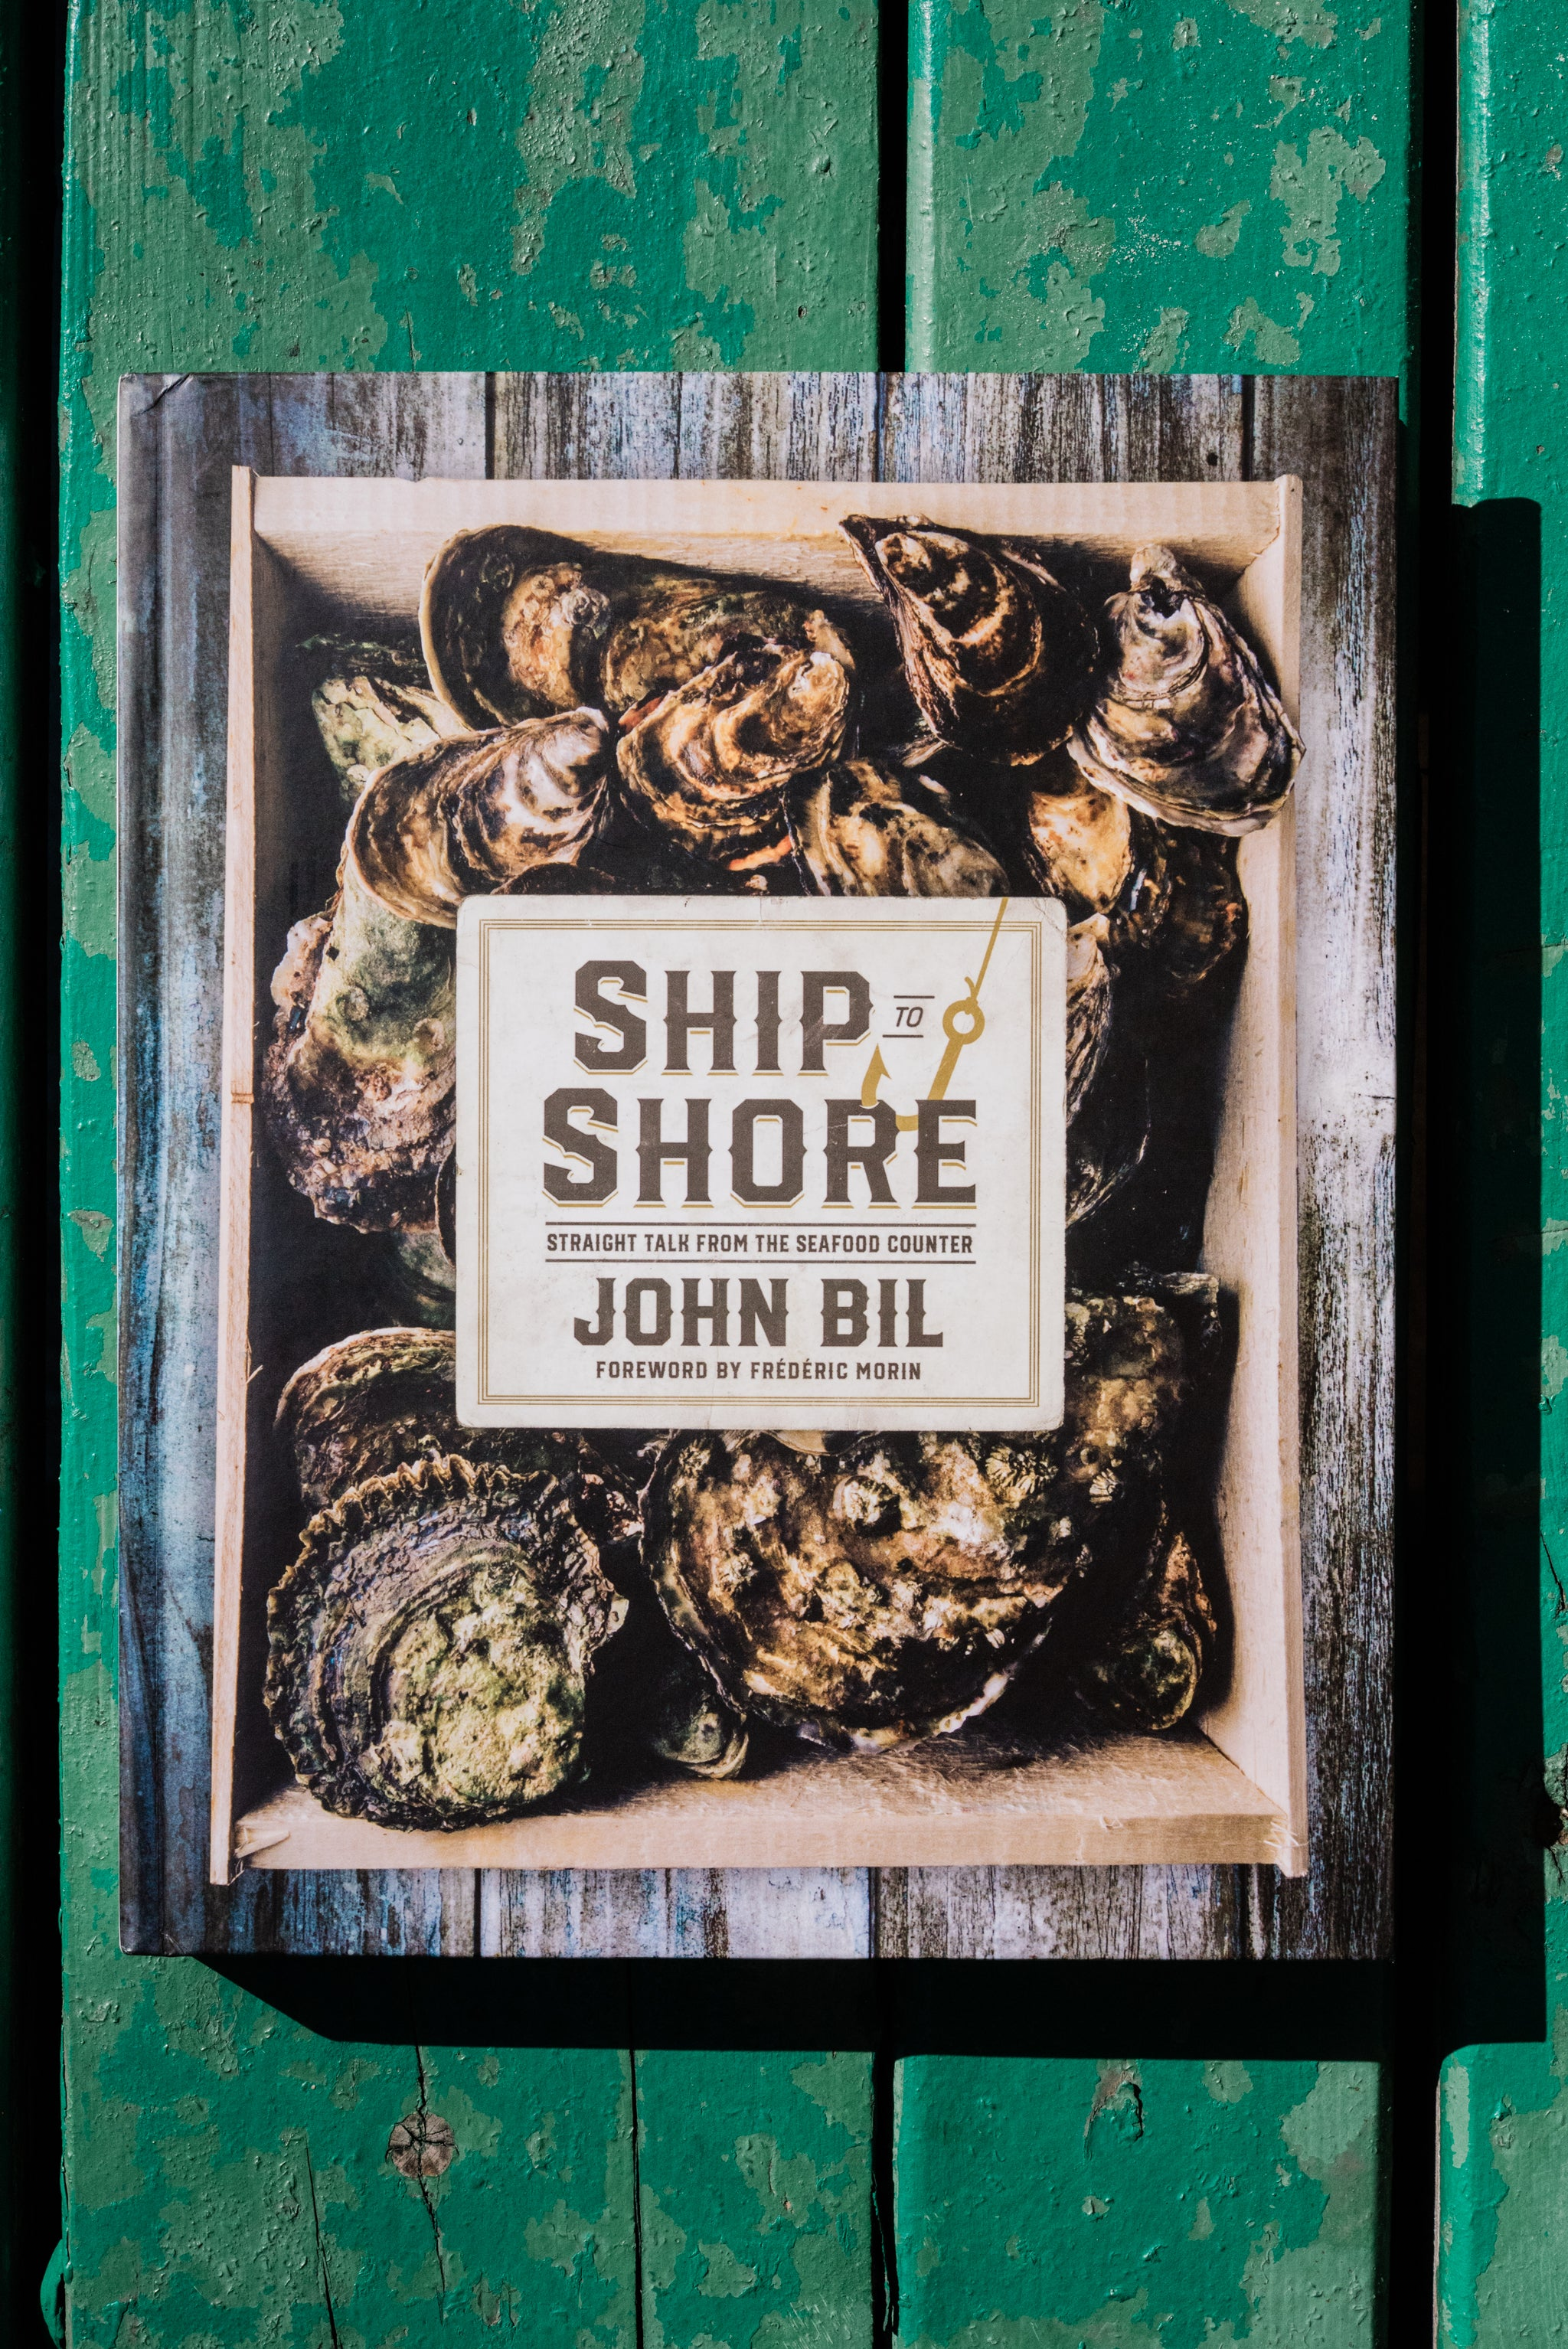 Ship to Shore, Straight Talk from the Seafood Counter by John Bil